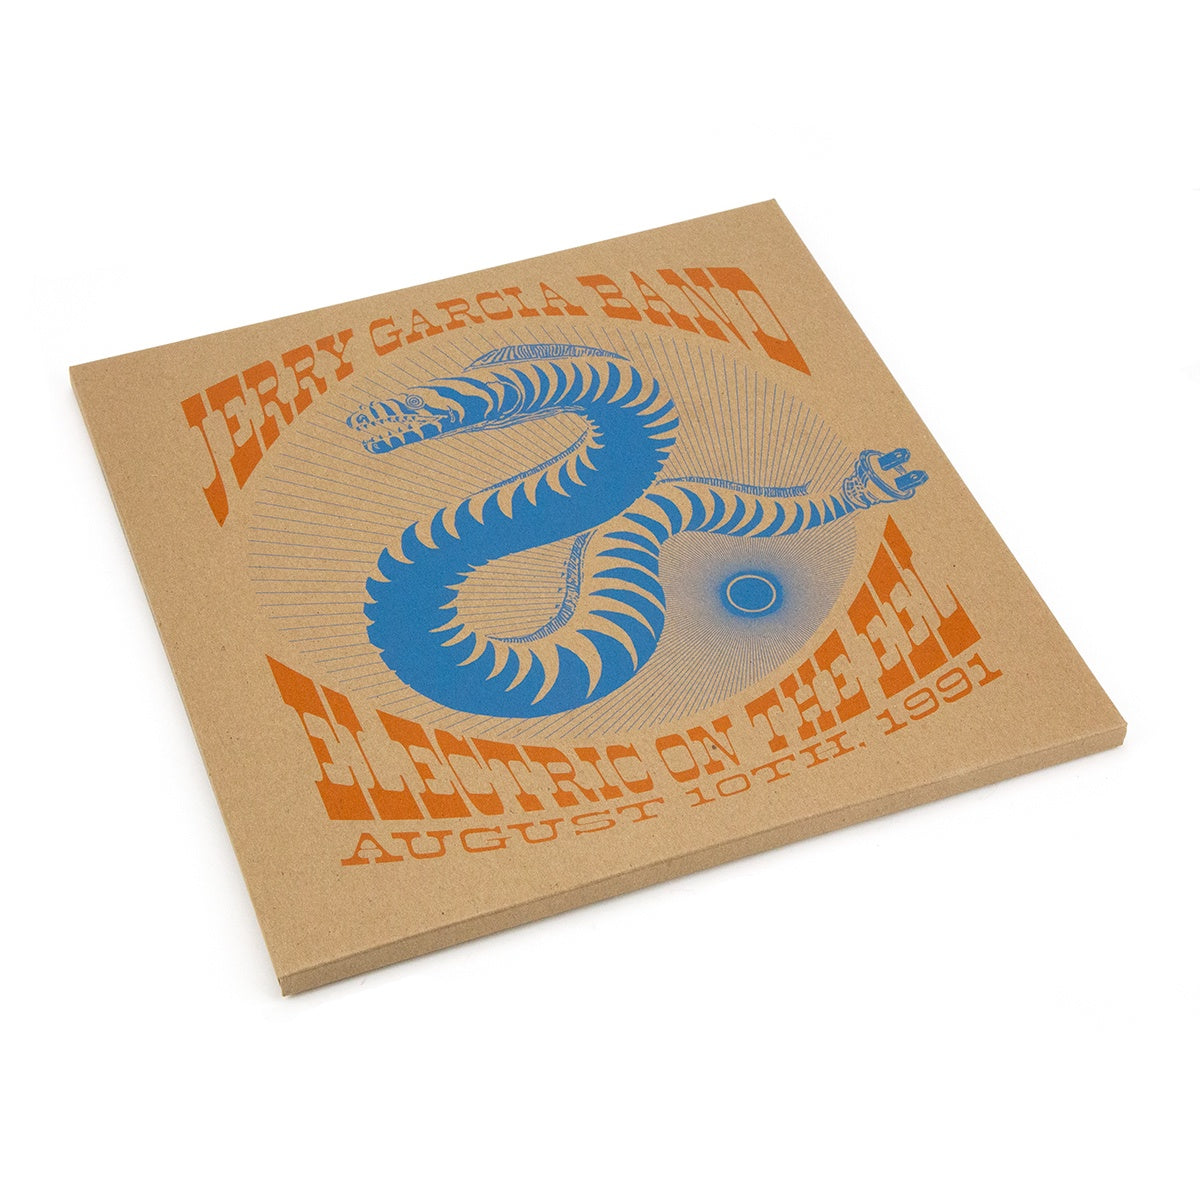 Jerry Garcia Band - Electric On The Eel - New 4 Lp Record Box Set 2019 USA ATO Vinyl - Psychedelic Rock / Classic